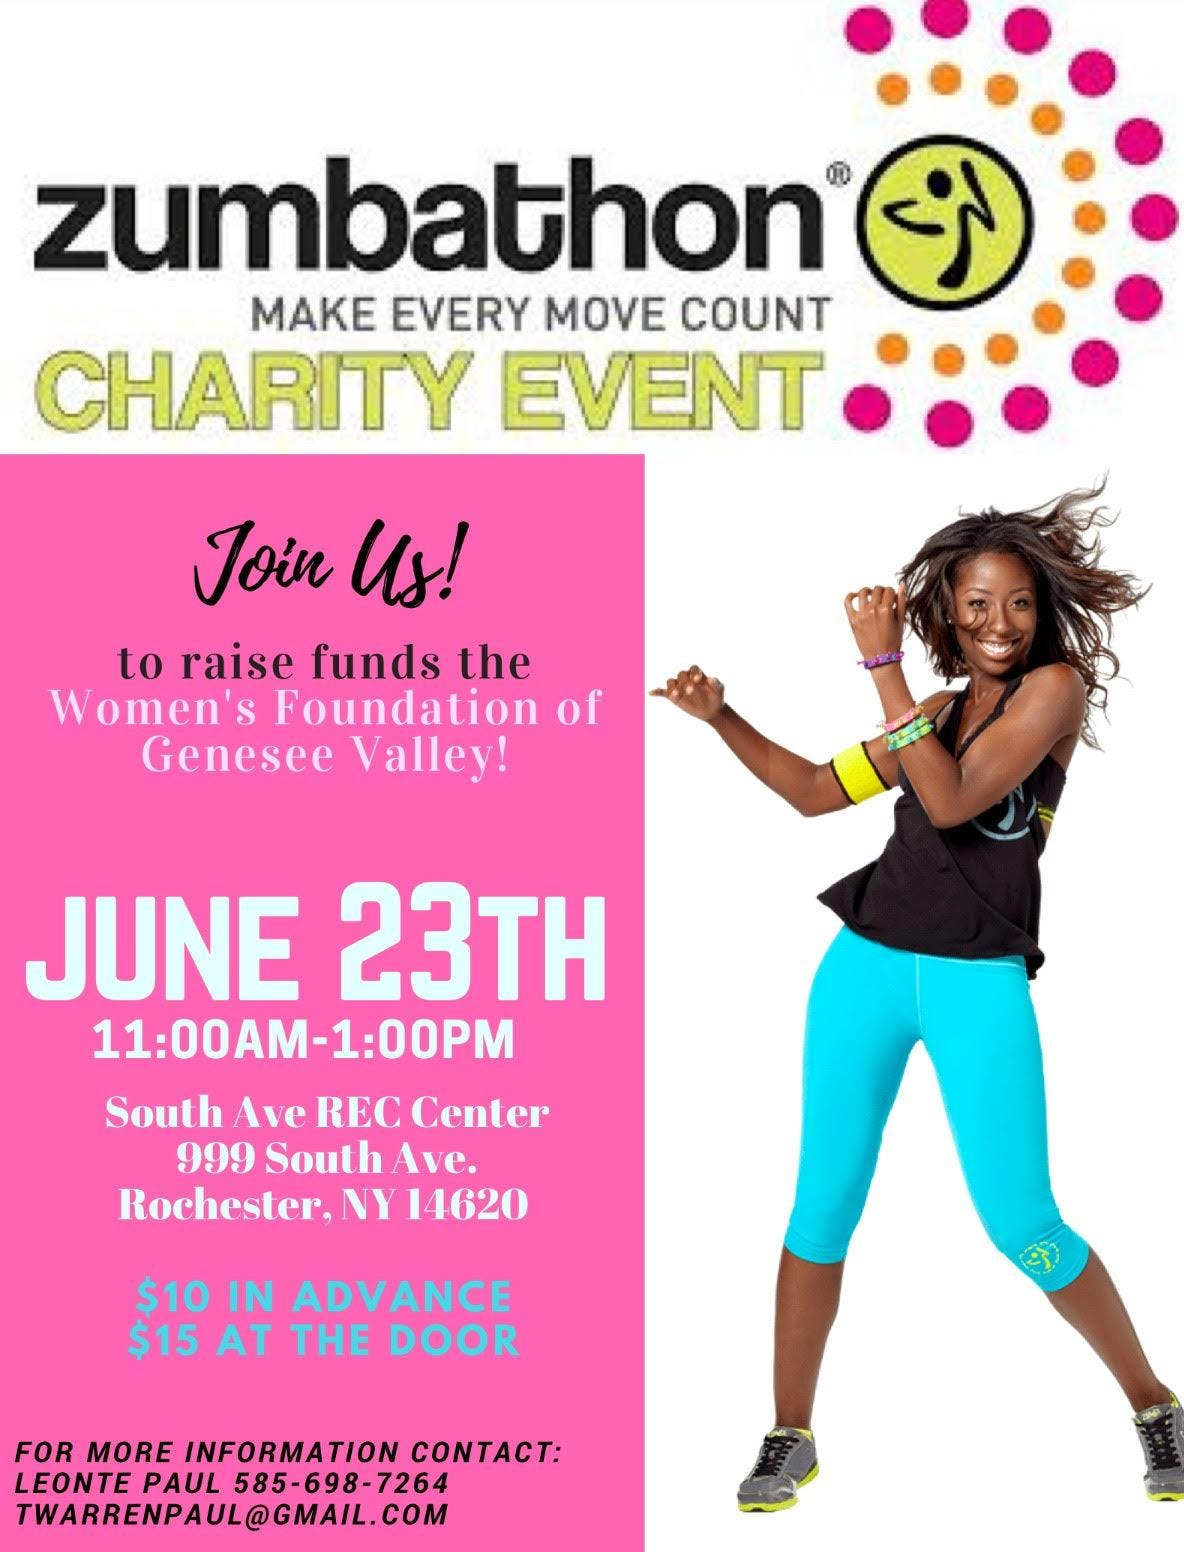 ZUMBATHON FOR WOMENS FOUNDATION OF GENESSEE V